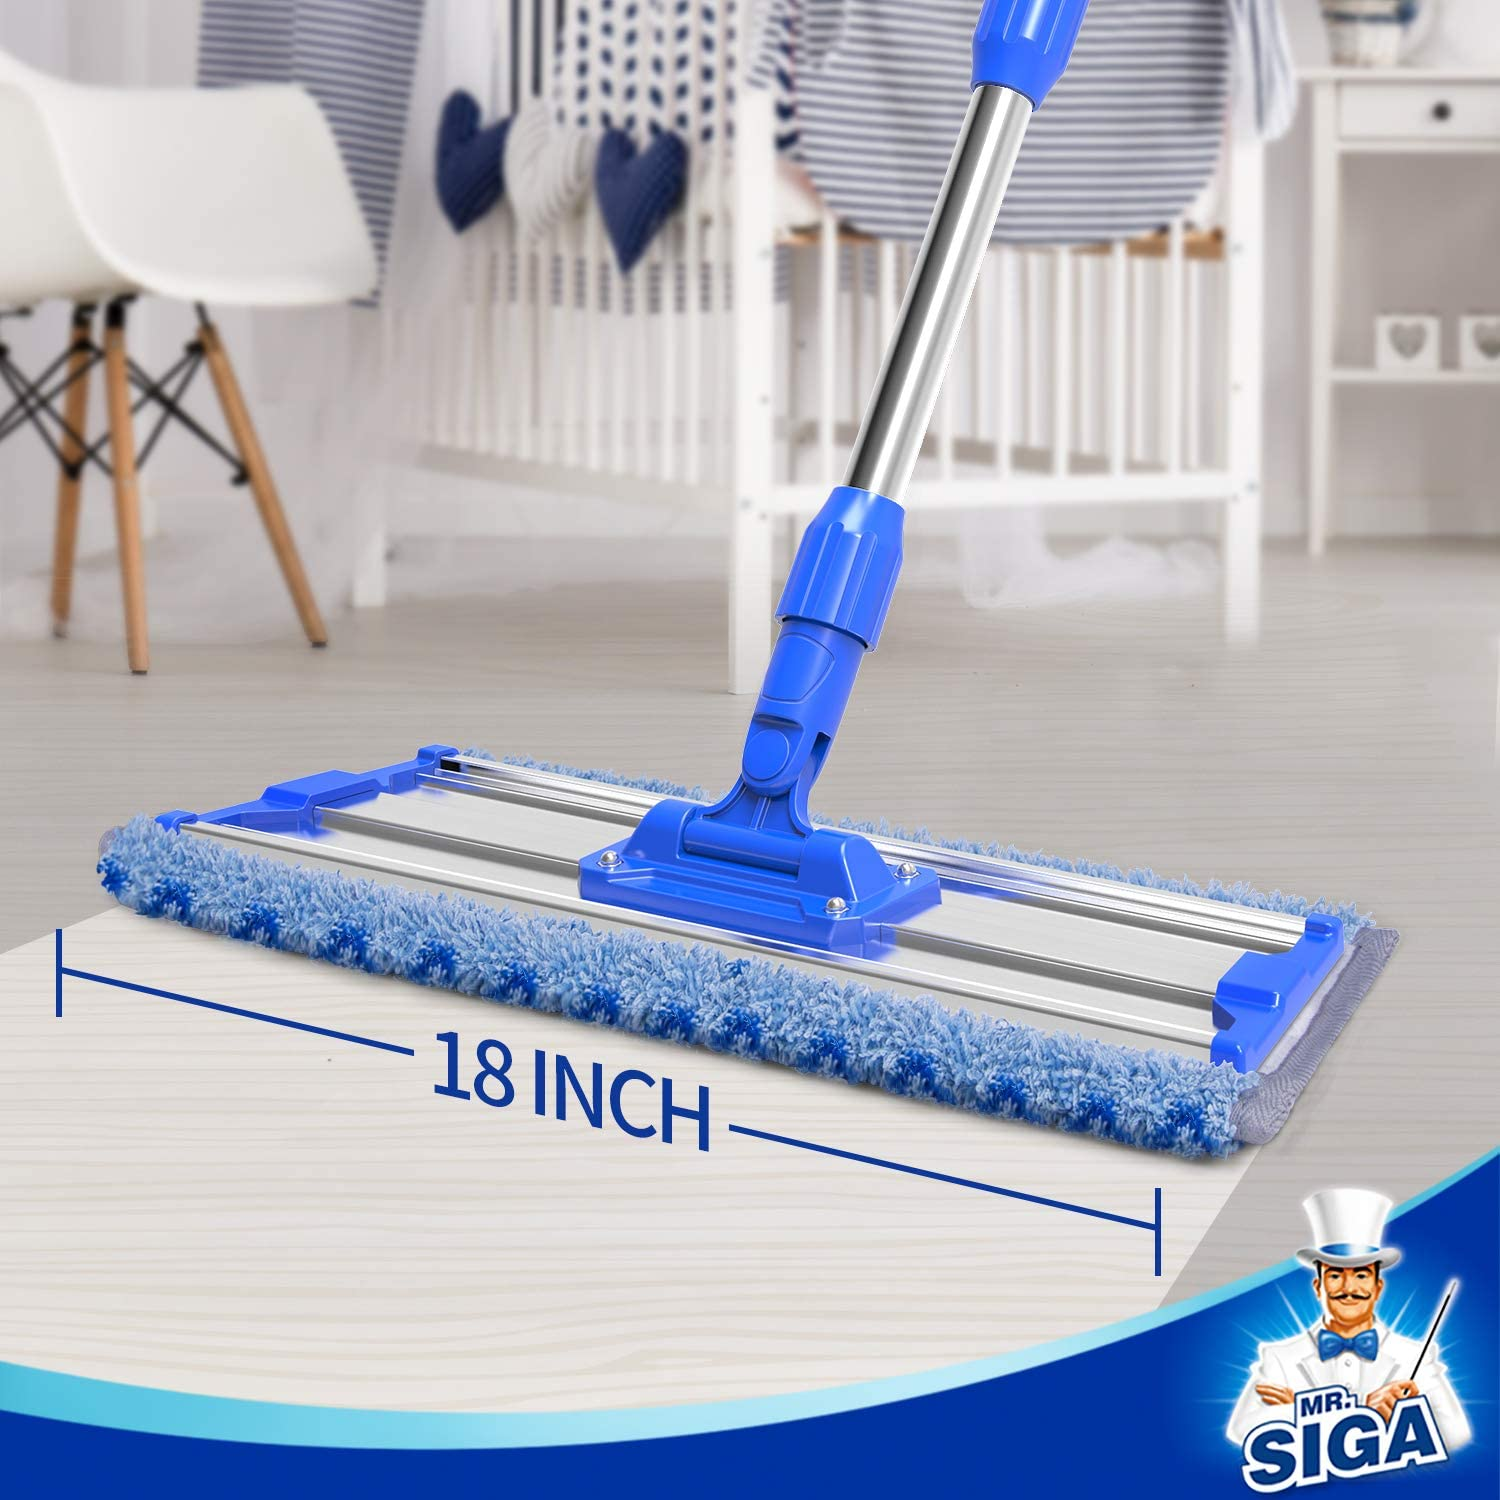 Professional Microfiber Mop with Adjustable Stainless Steel